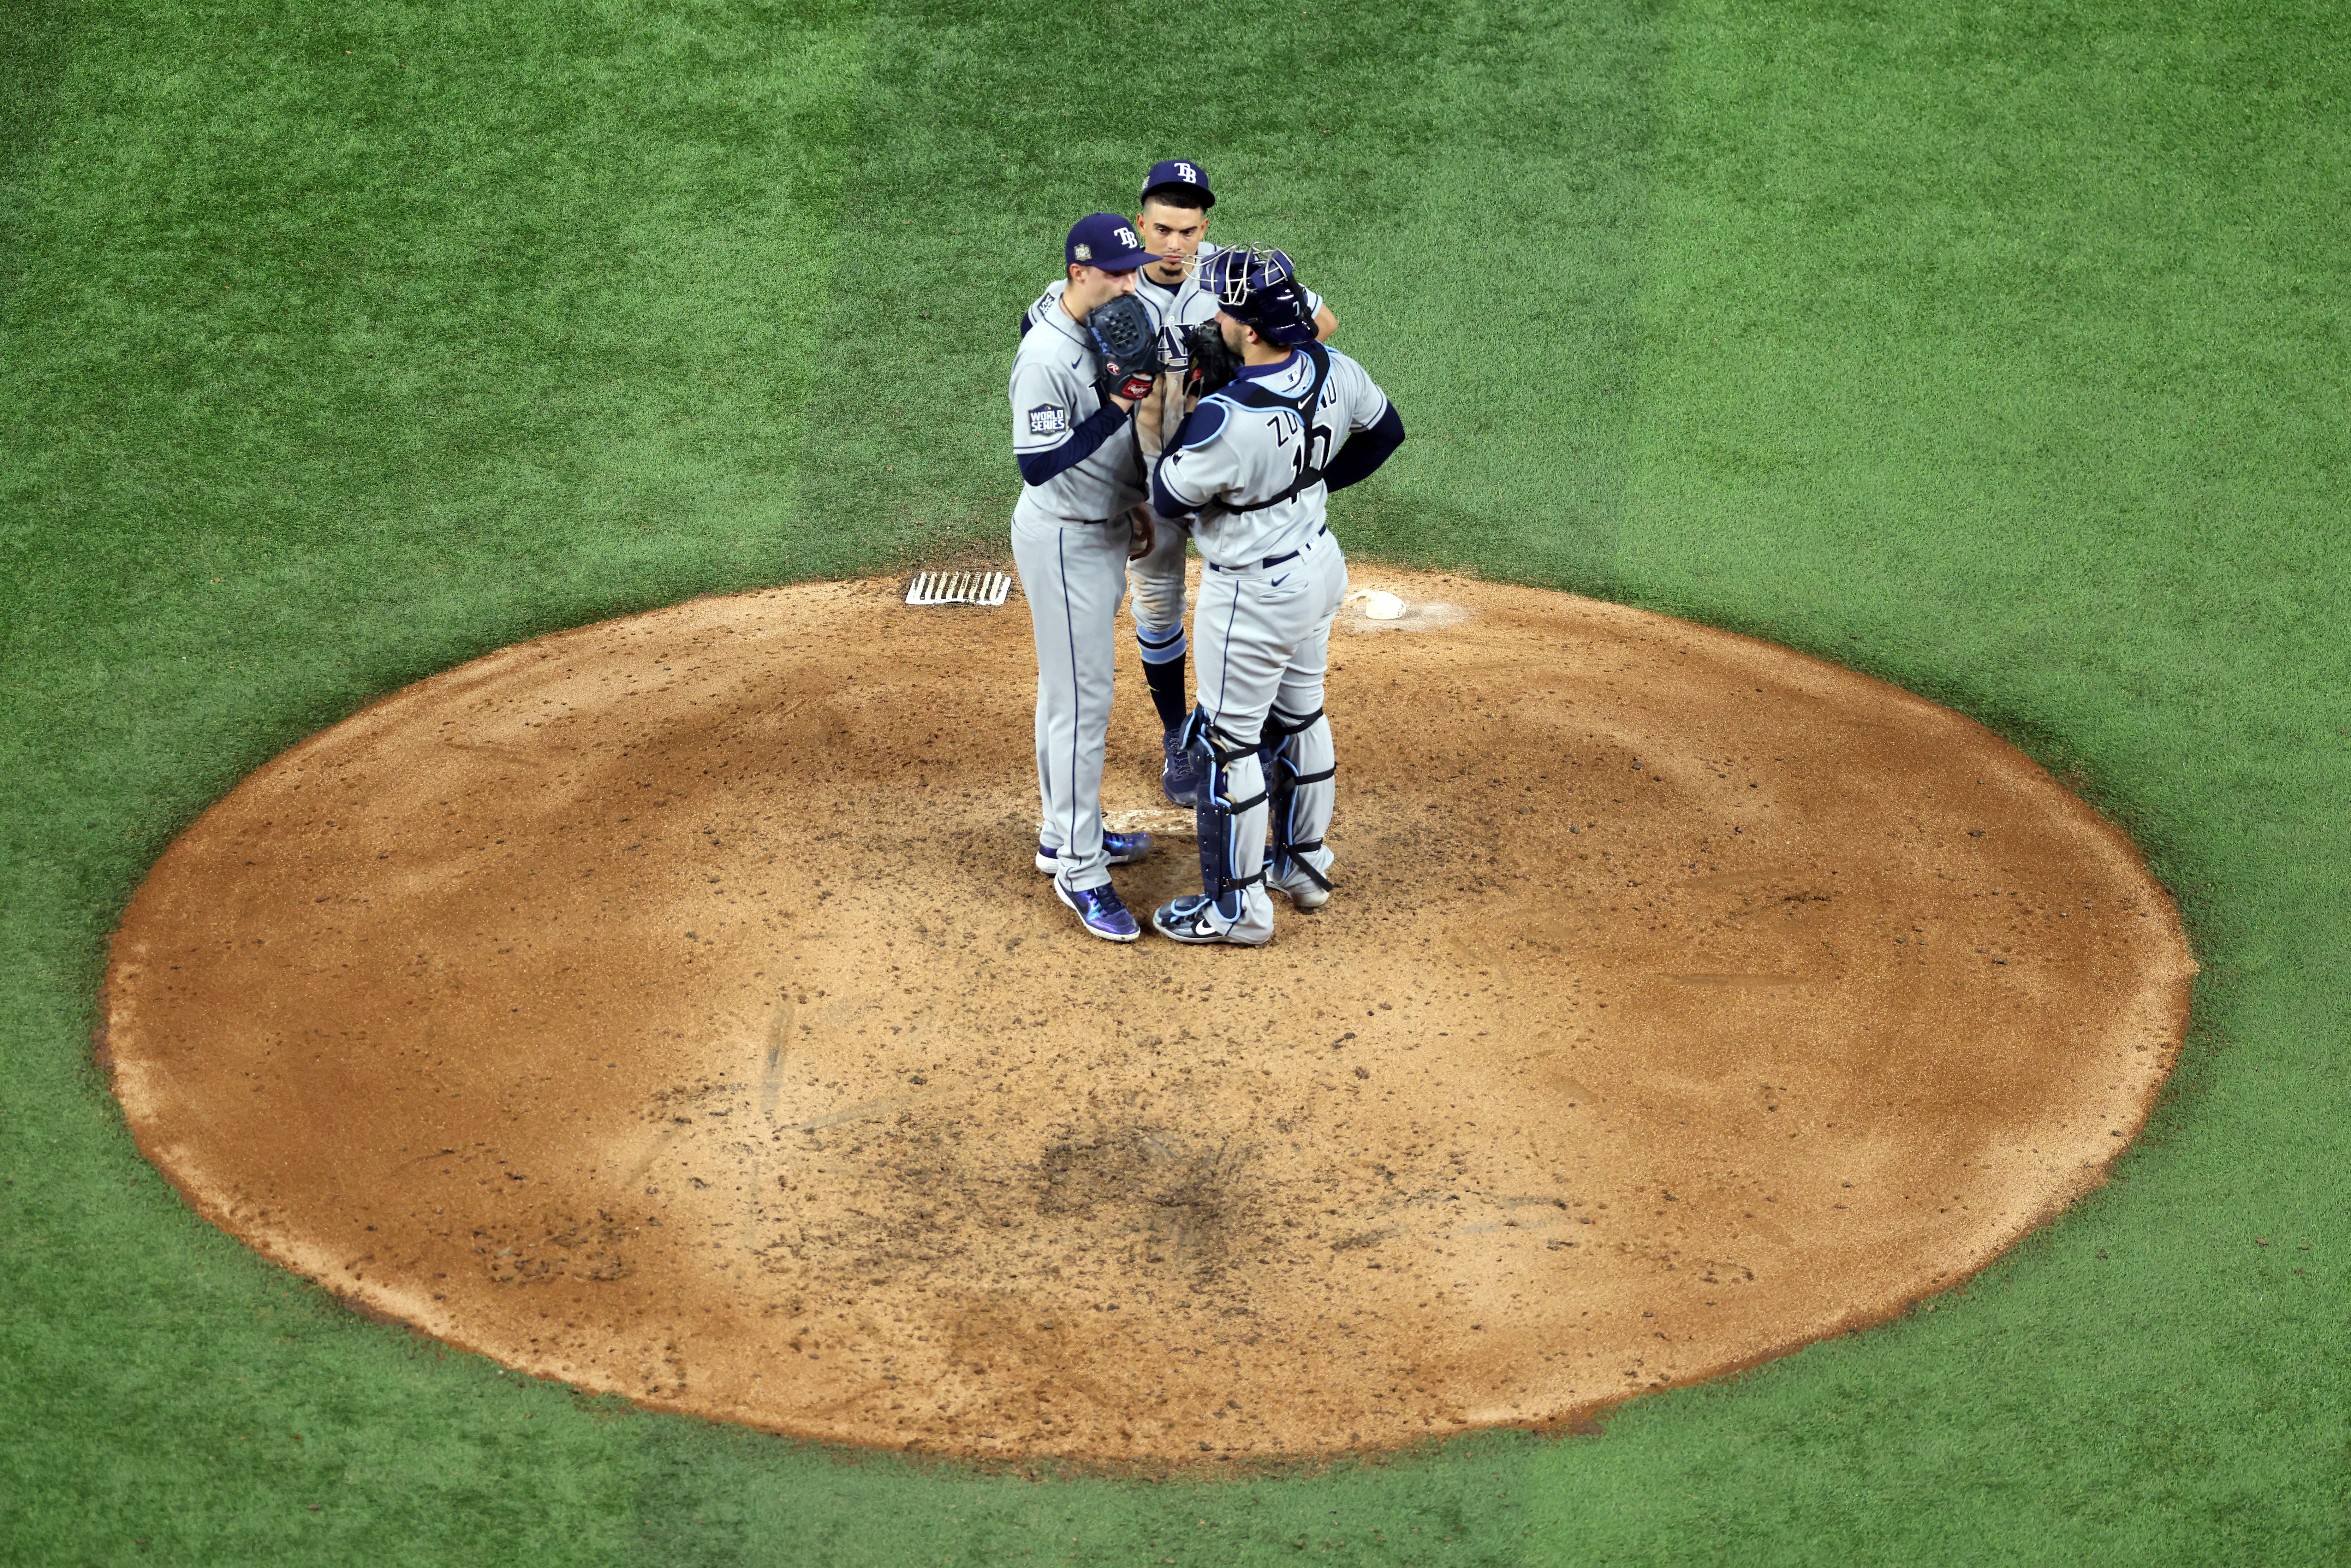 Blake Snell #4 of the Tampa Bay Rays receives a mound visit against the Los Angeles Dodgers during the fifth inning in Game Two of the 2020 MLB World Series at Globe Life Field on October 21, 2020 in Arlington, Texas.